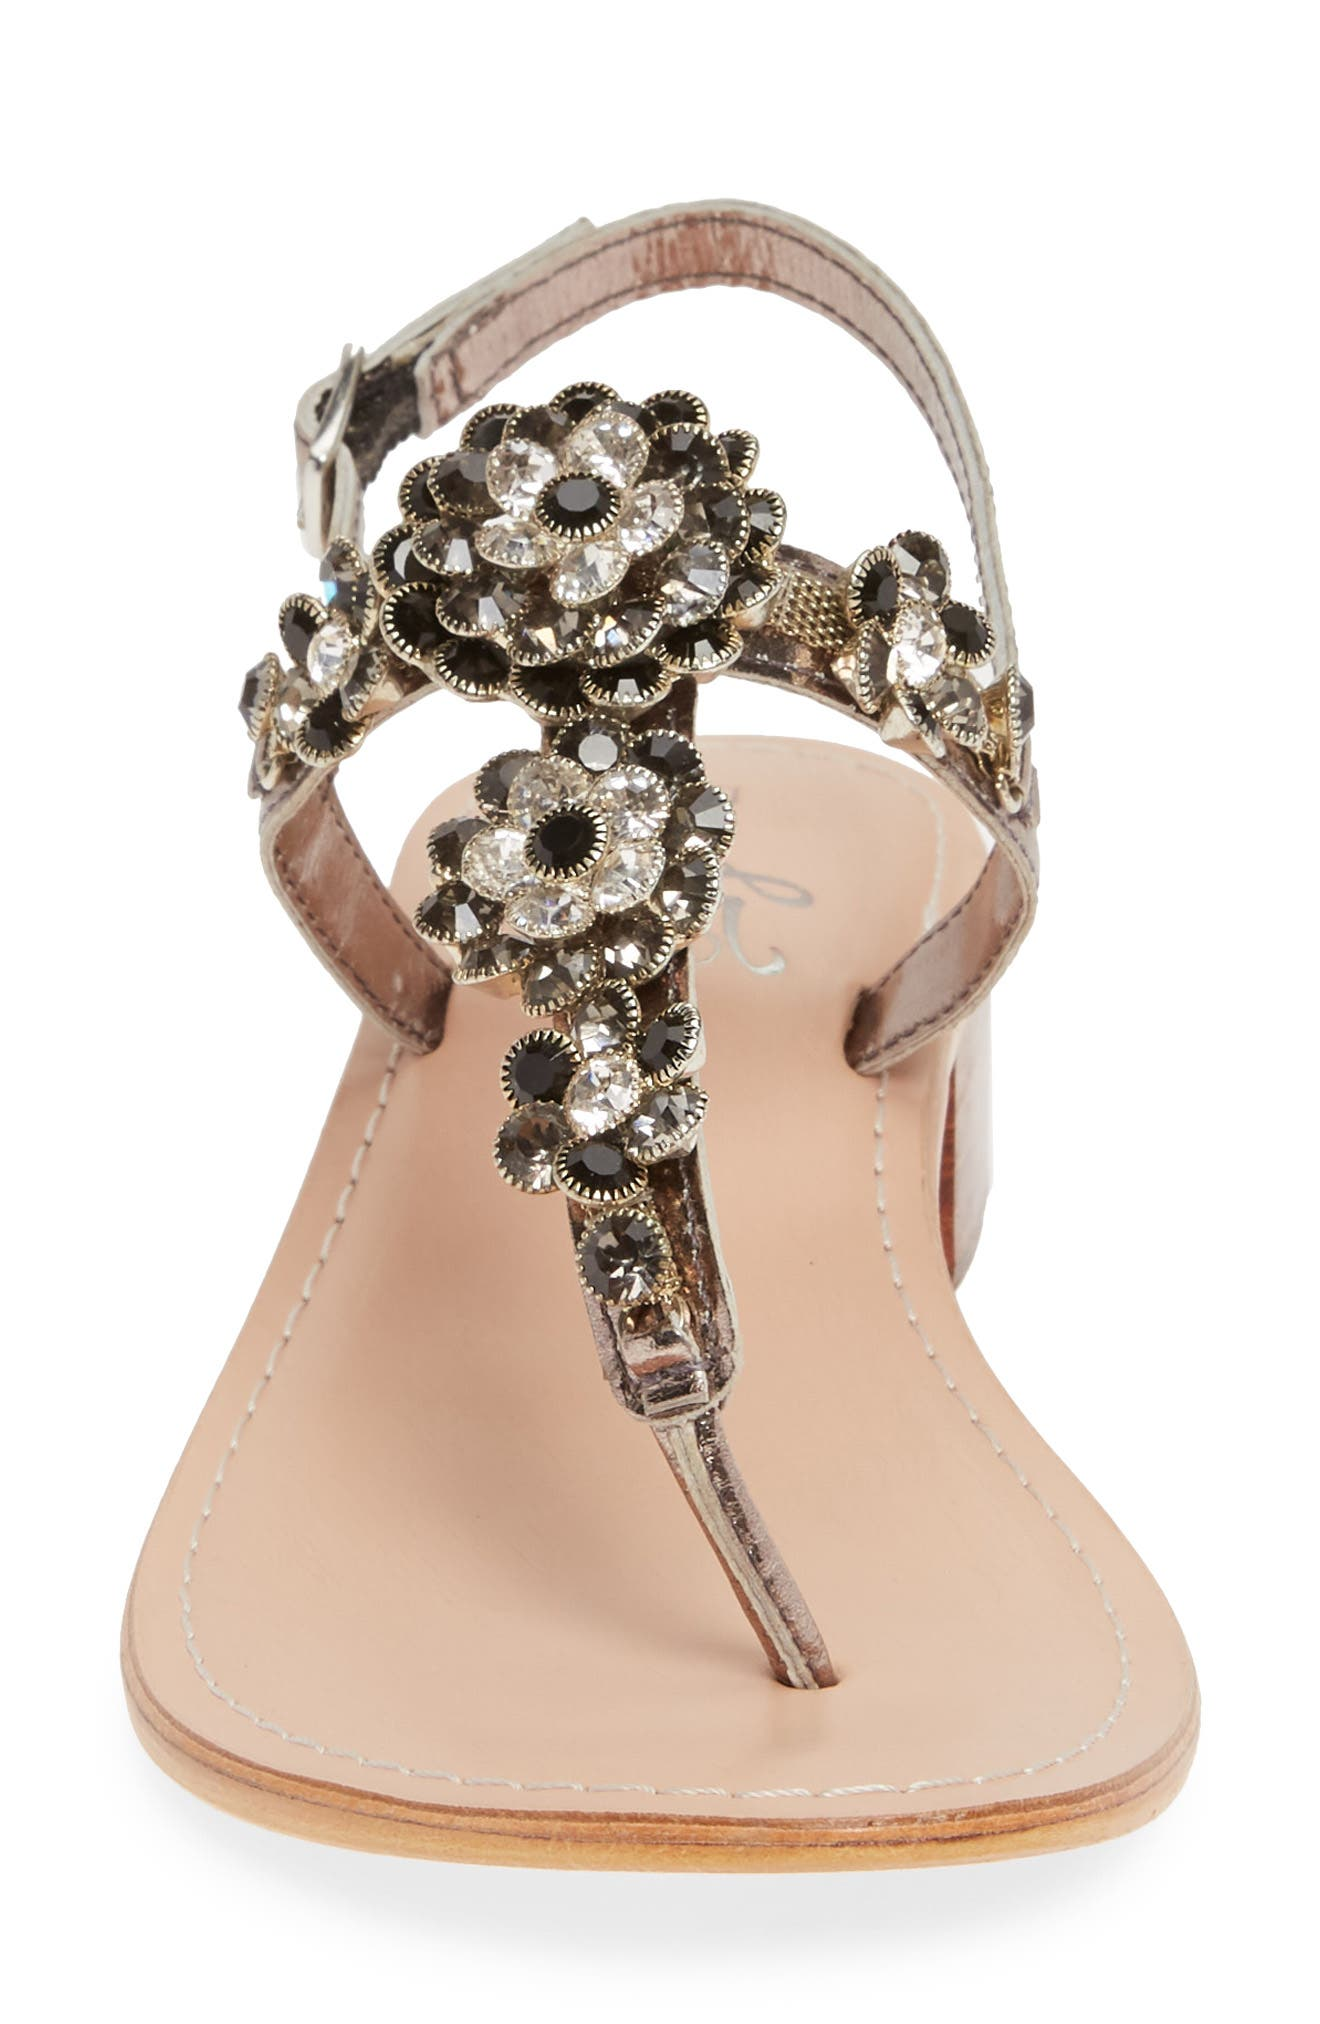 BOS. & CO.,                             Wyn Embellished Sandal,                             Alternate thumbnail 4, color,                             ANTHRACITE/ PEWTER LEATHER